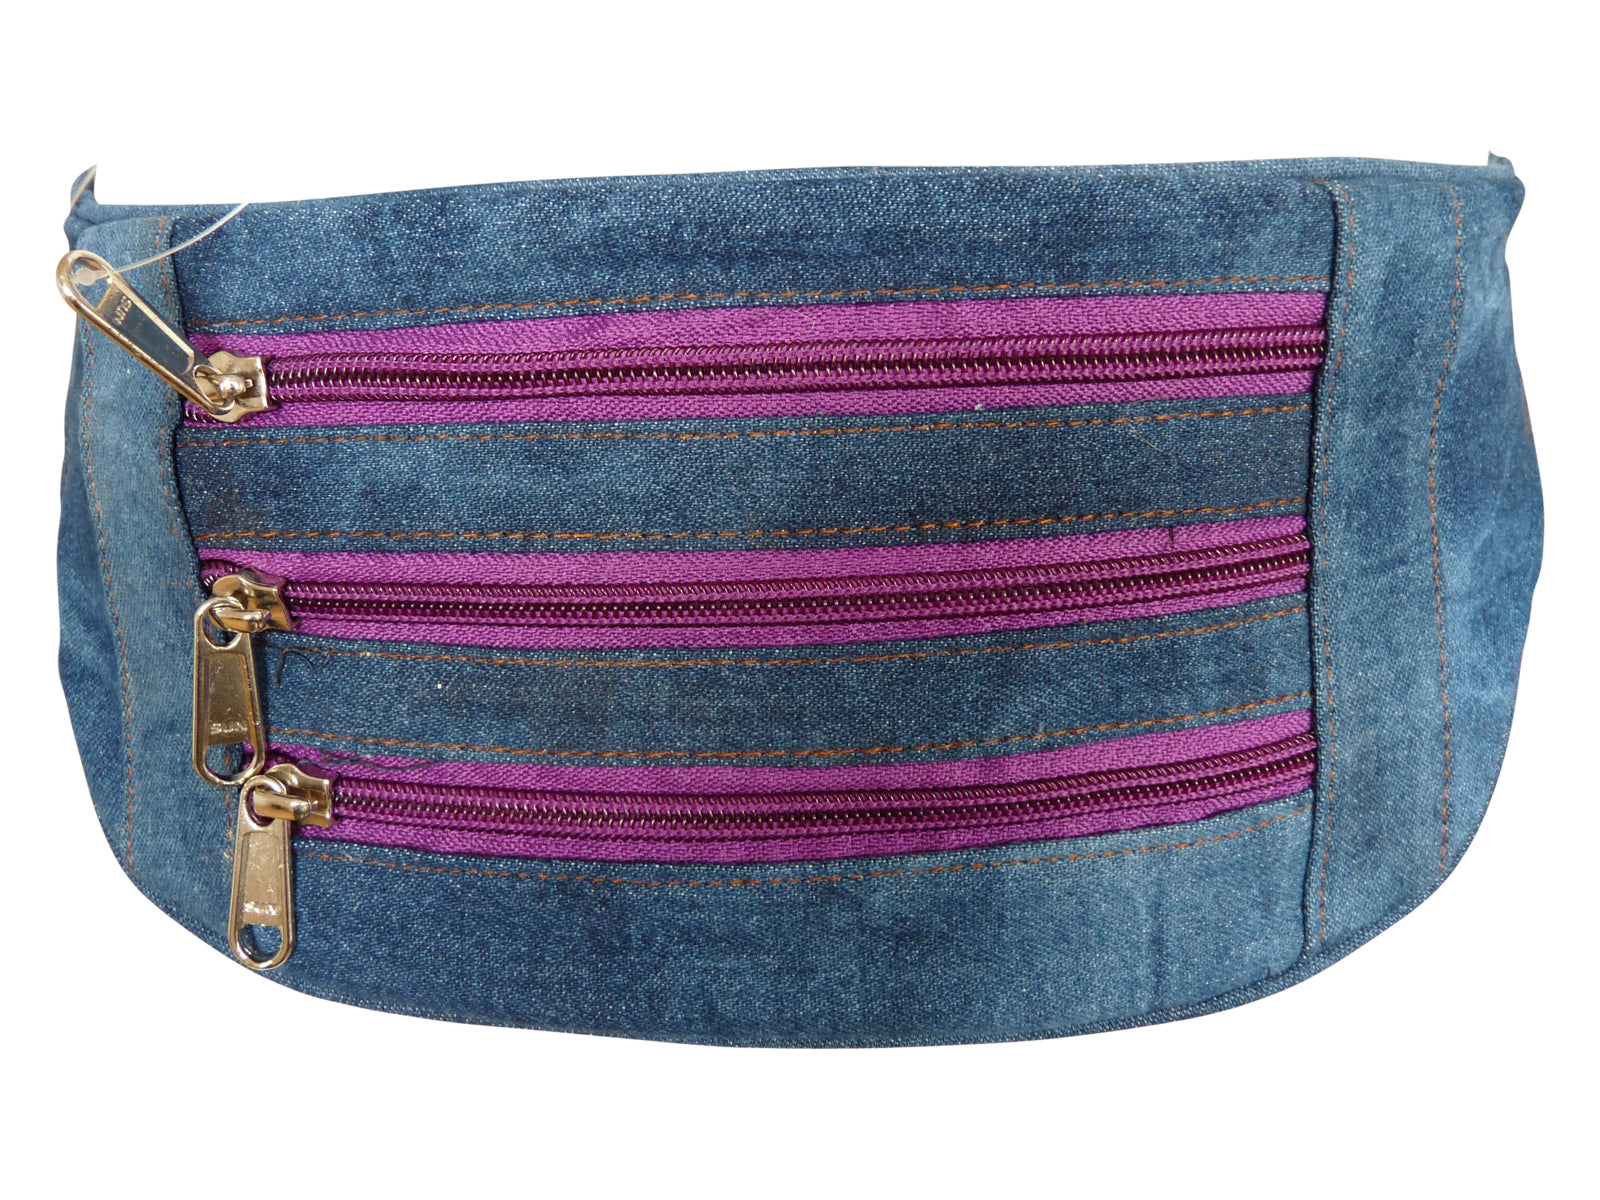 Flat Denim Bumbag RL252DPuZ purple zips